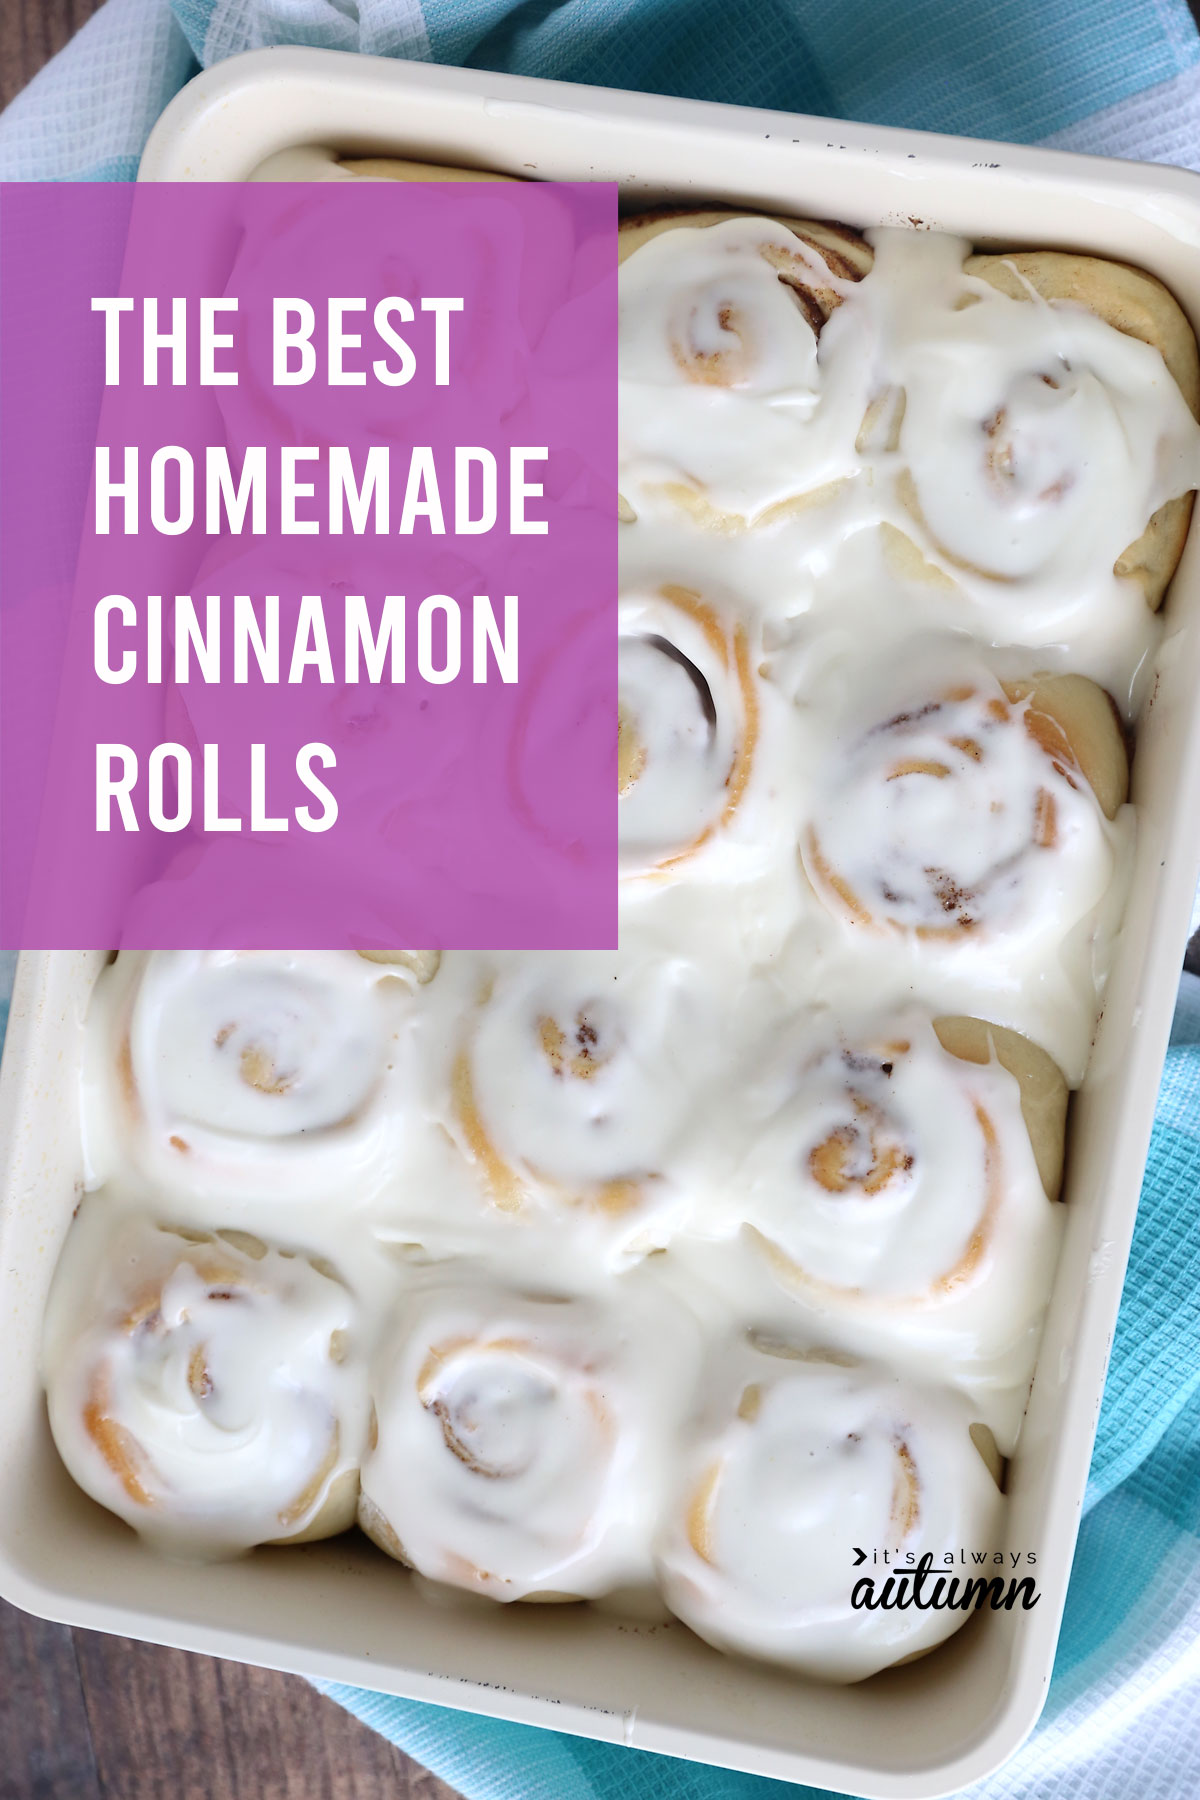 This is the best cinnamon roll recipe! The dough is easy to make and handle, the filling is gooey, and the frosting is to die for!